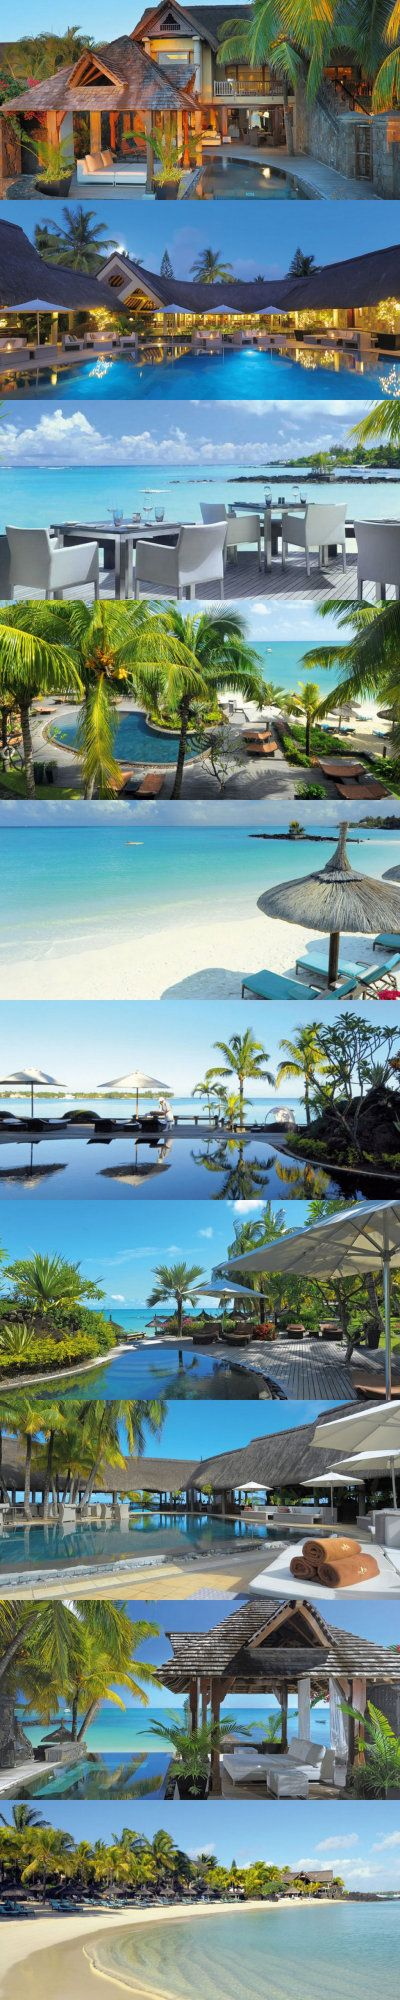 Mauritius is a very popular summer destination. Here in Mauritius you can find a lot of luxury hotels and breathtaking beaches.